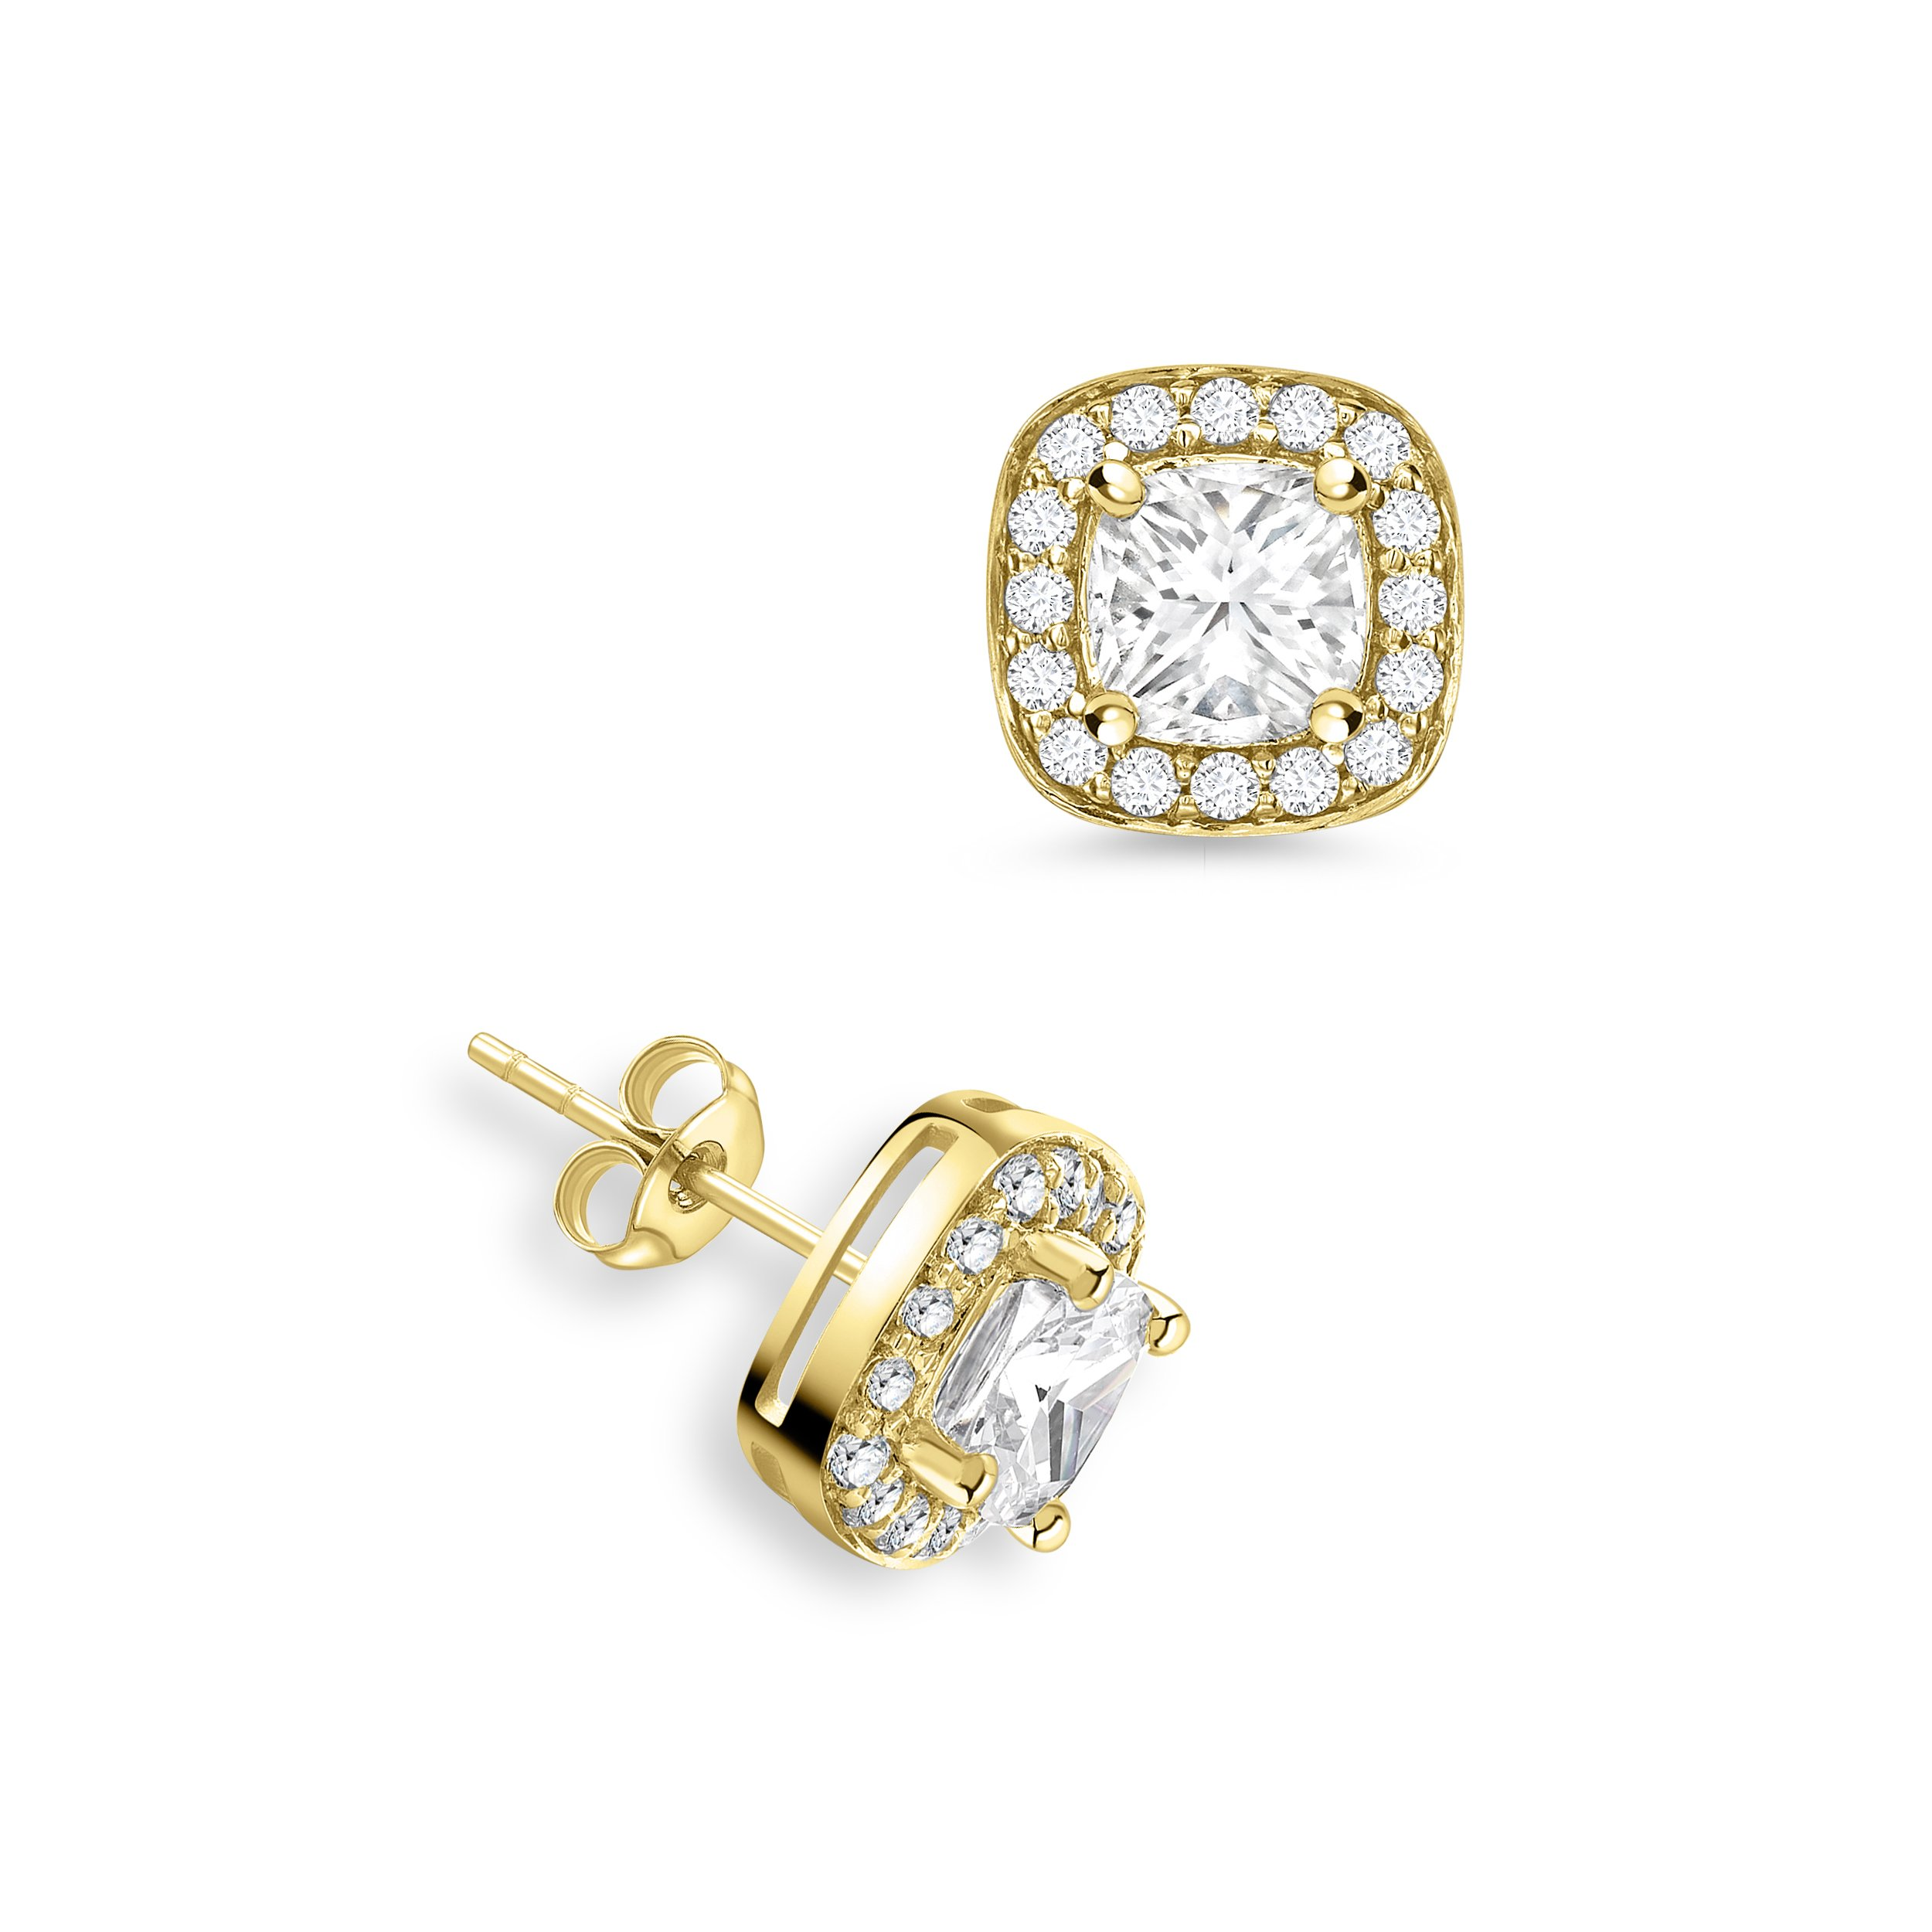 Cushion Shape Diamond Halo Diamond Earrings Available in Rose, Yellow, White Gold and Platinum